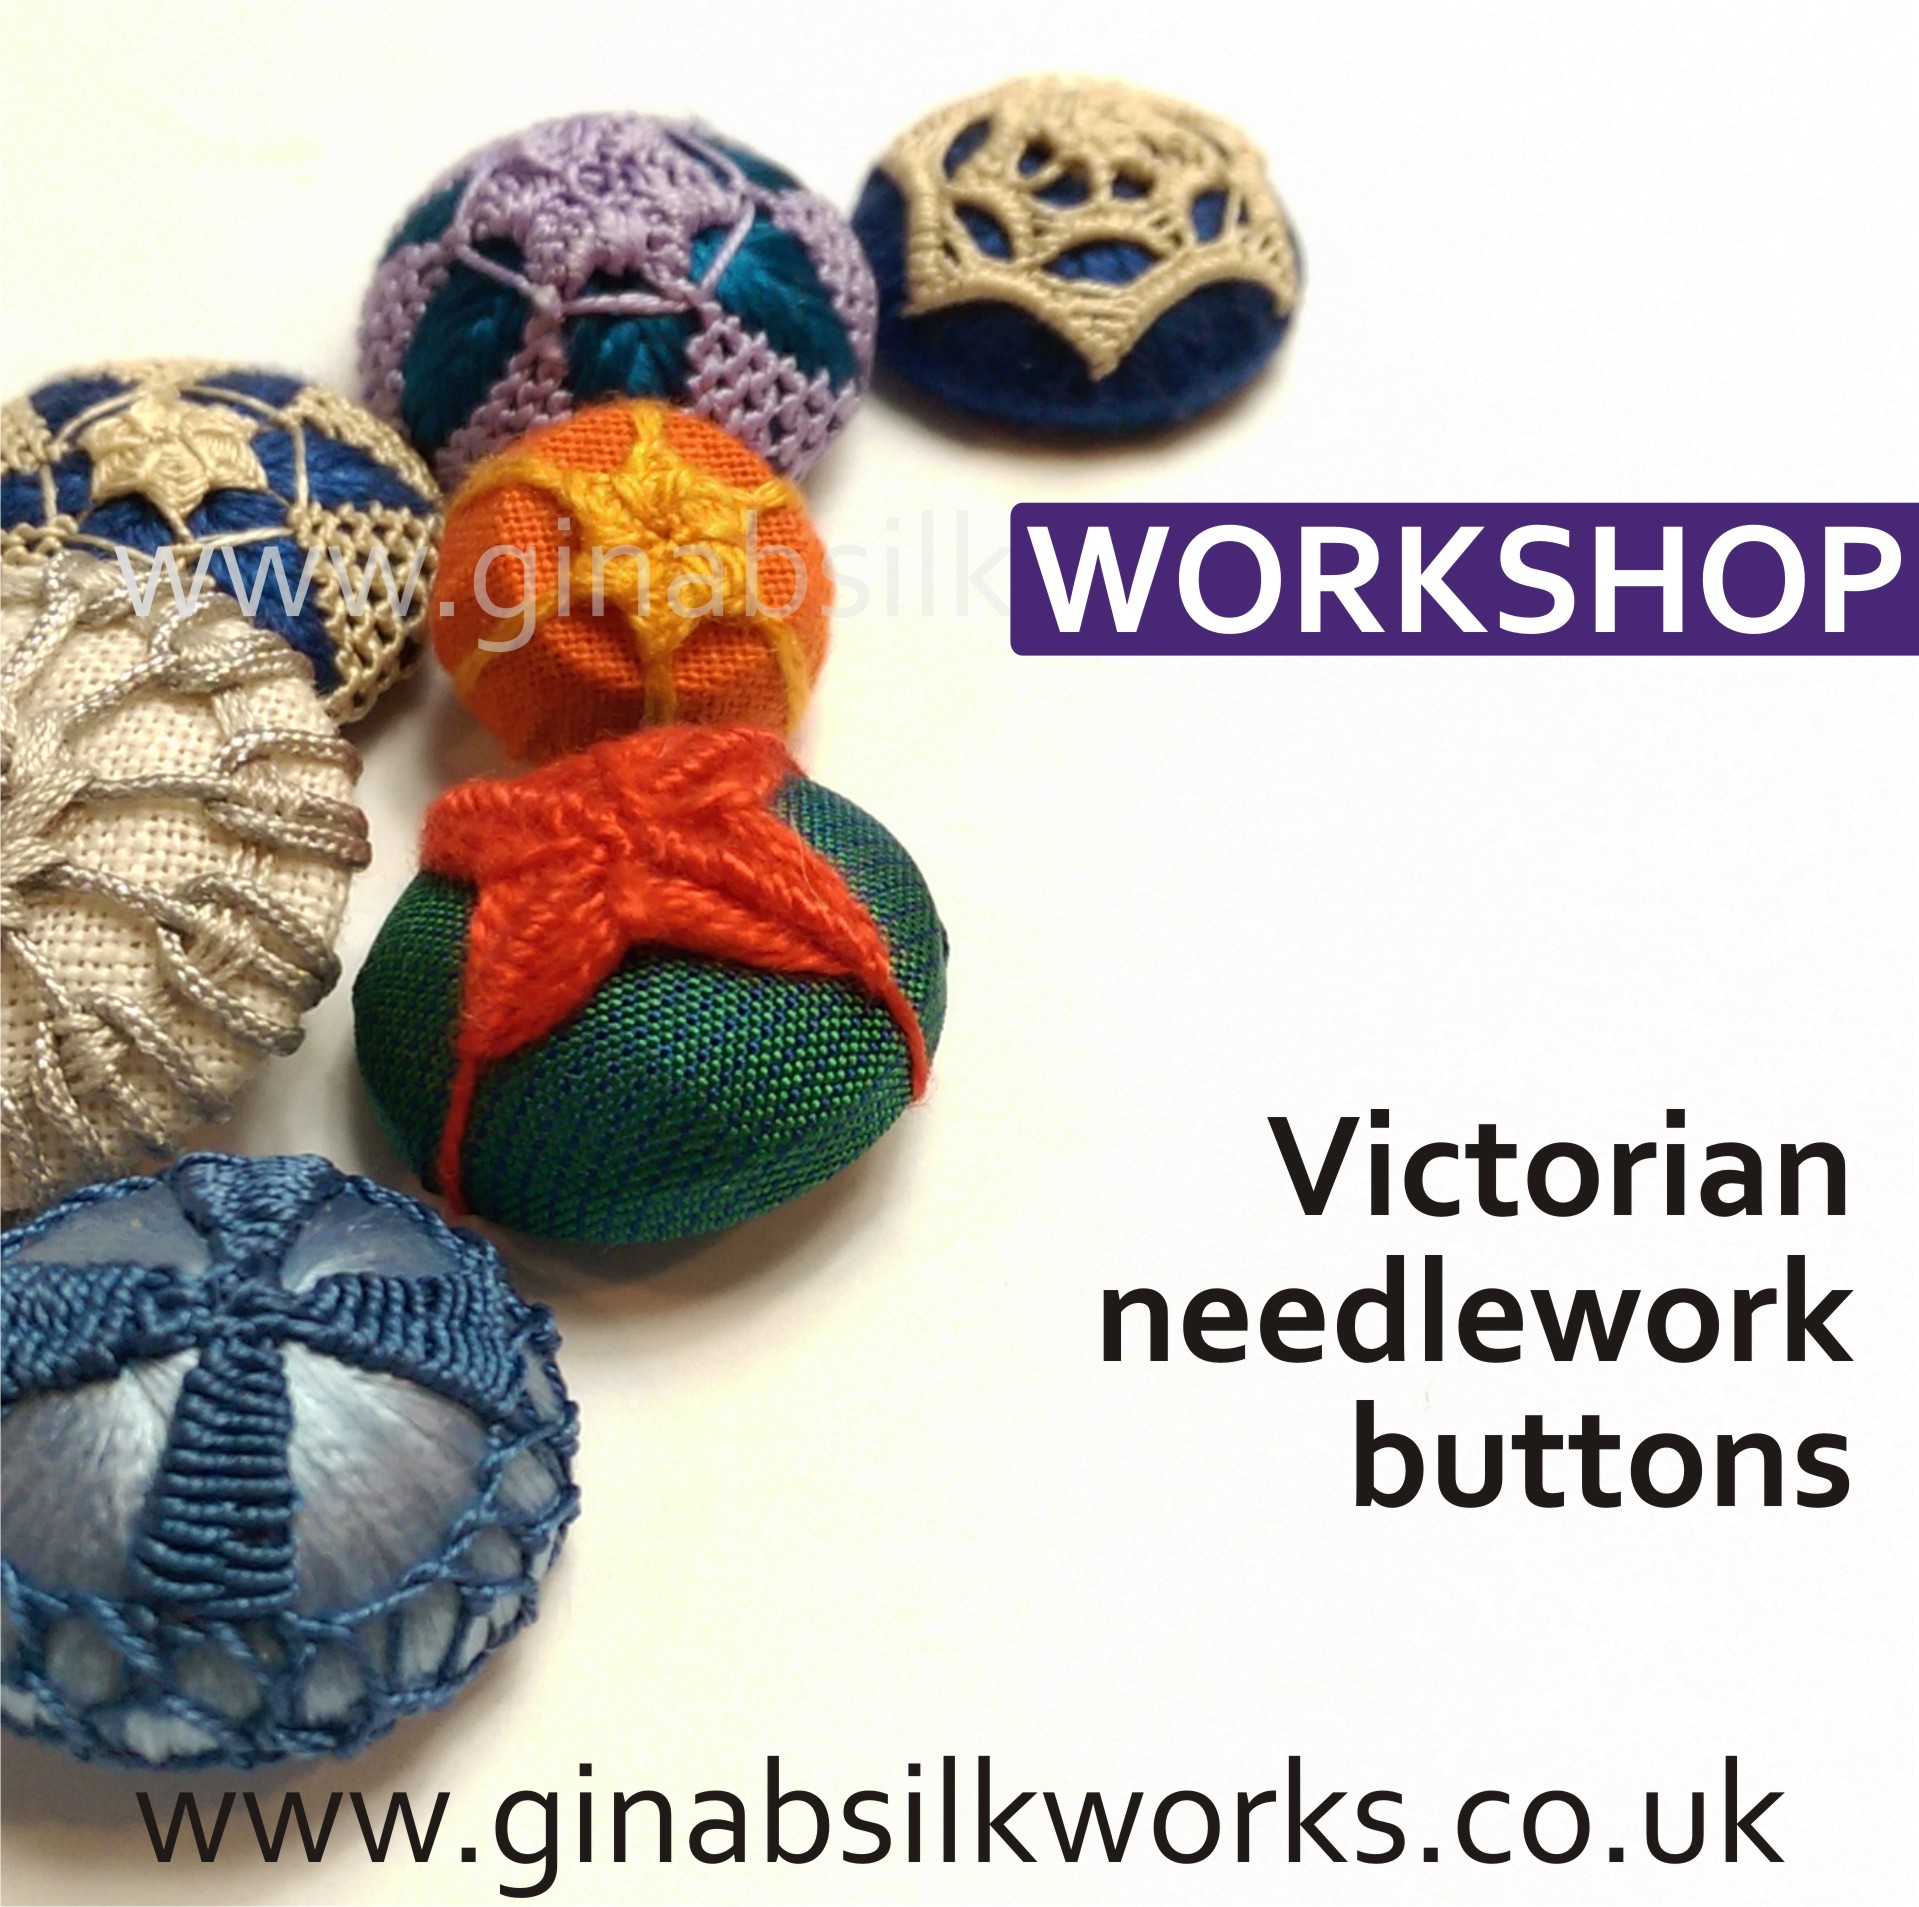 Victorian Needlework Buttons Workshop